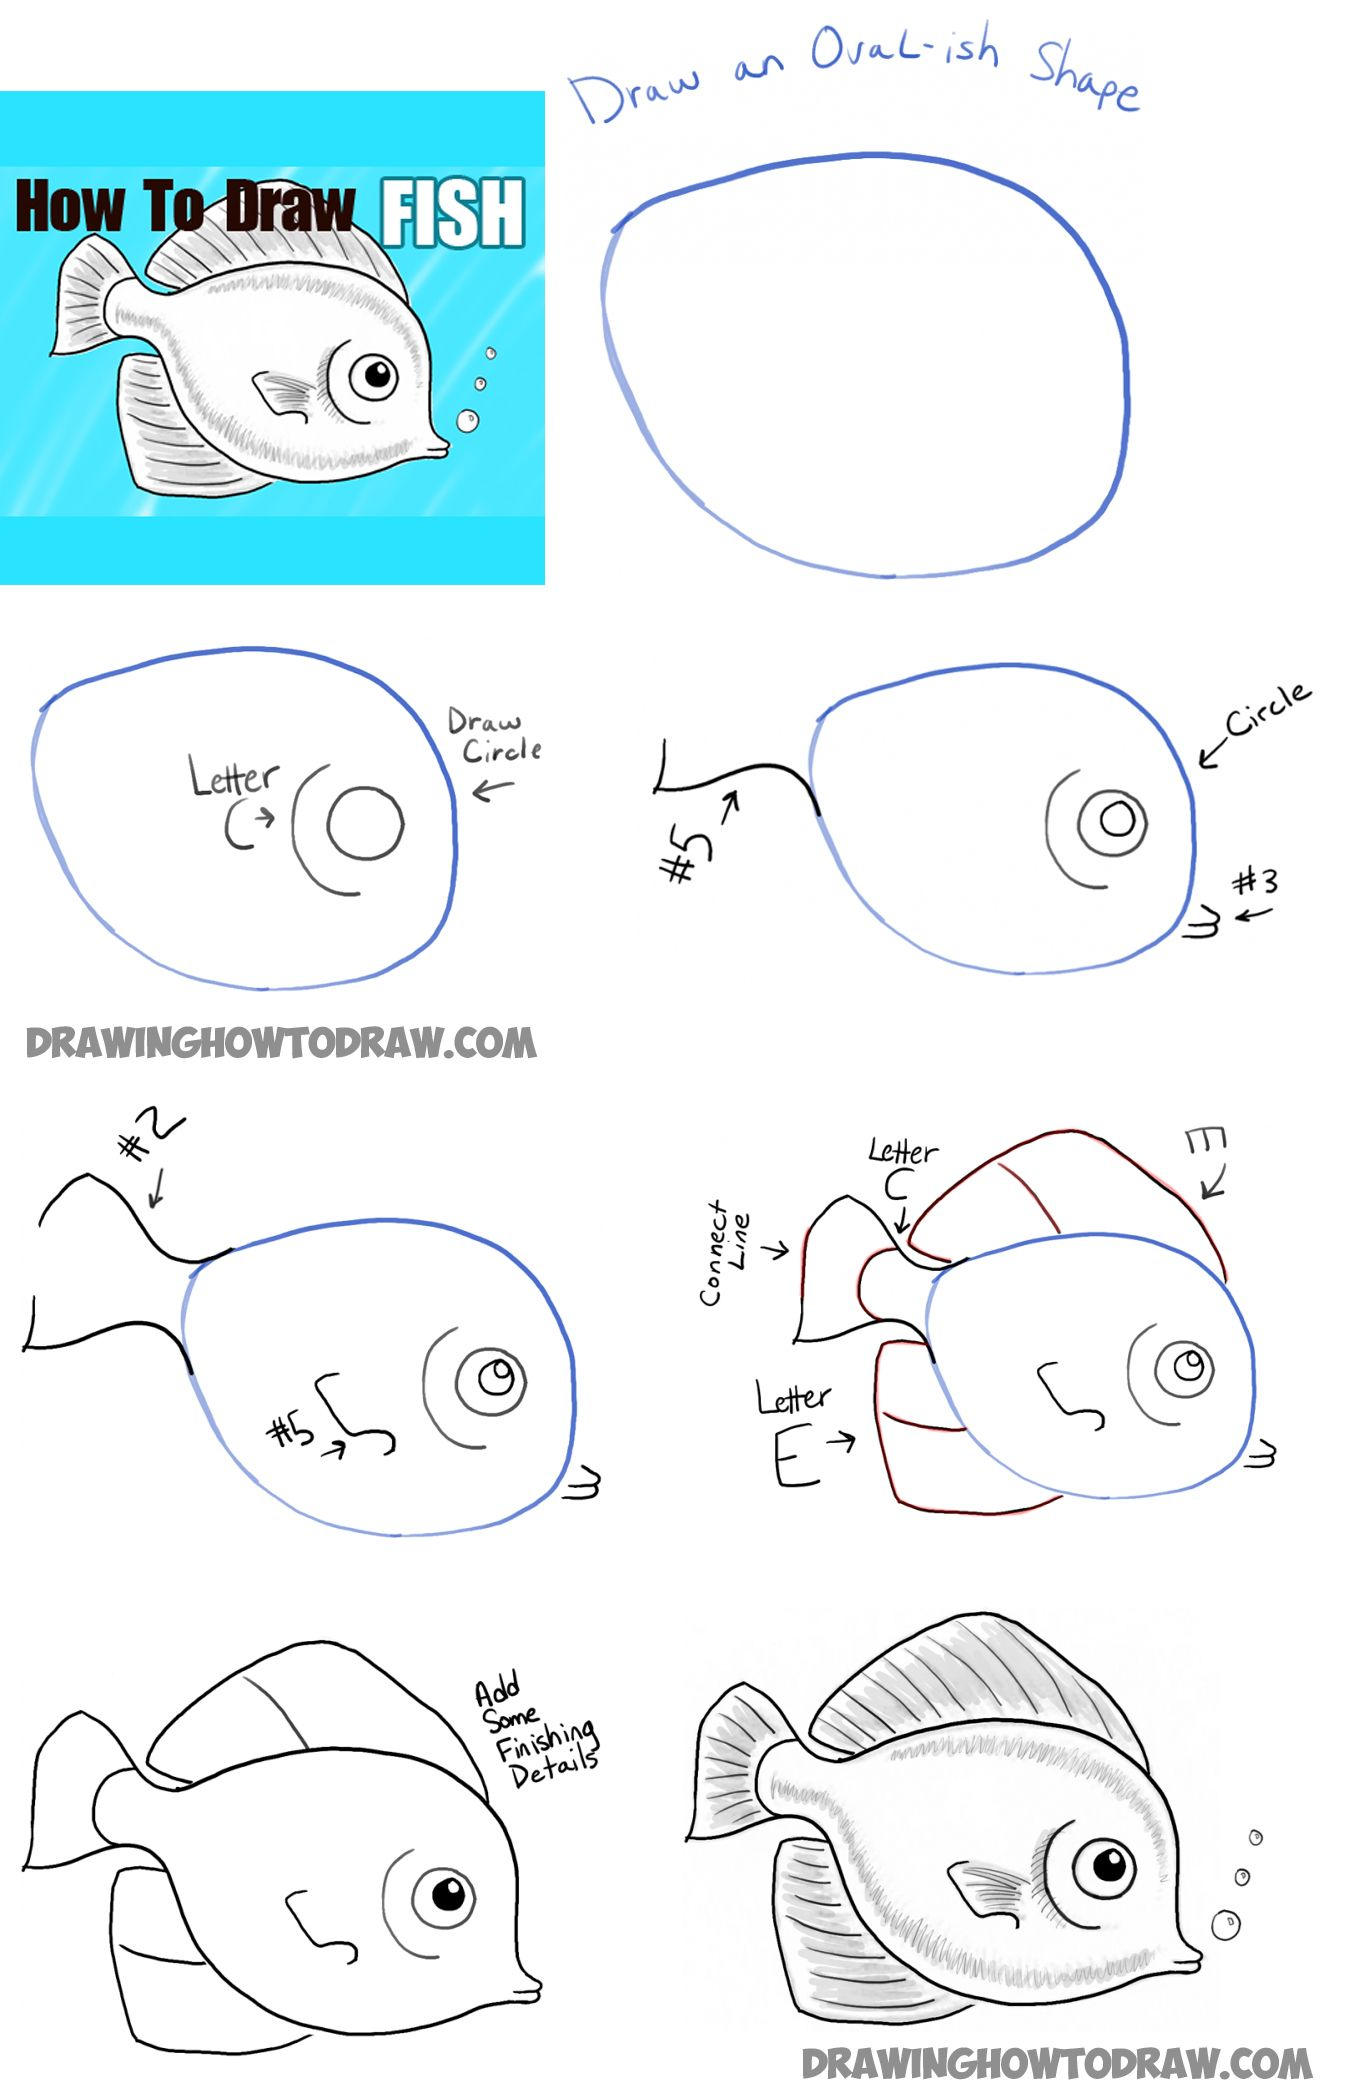 How to draw a cute fish cartoon with simple steps for kids how to draw step by step drawing tutorials